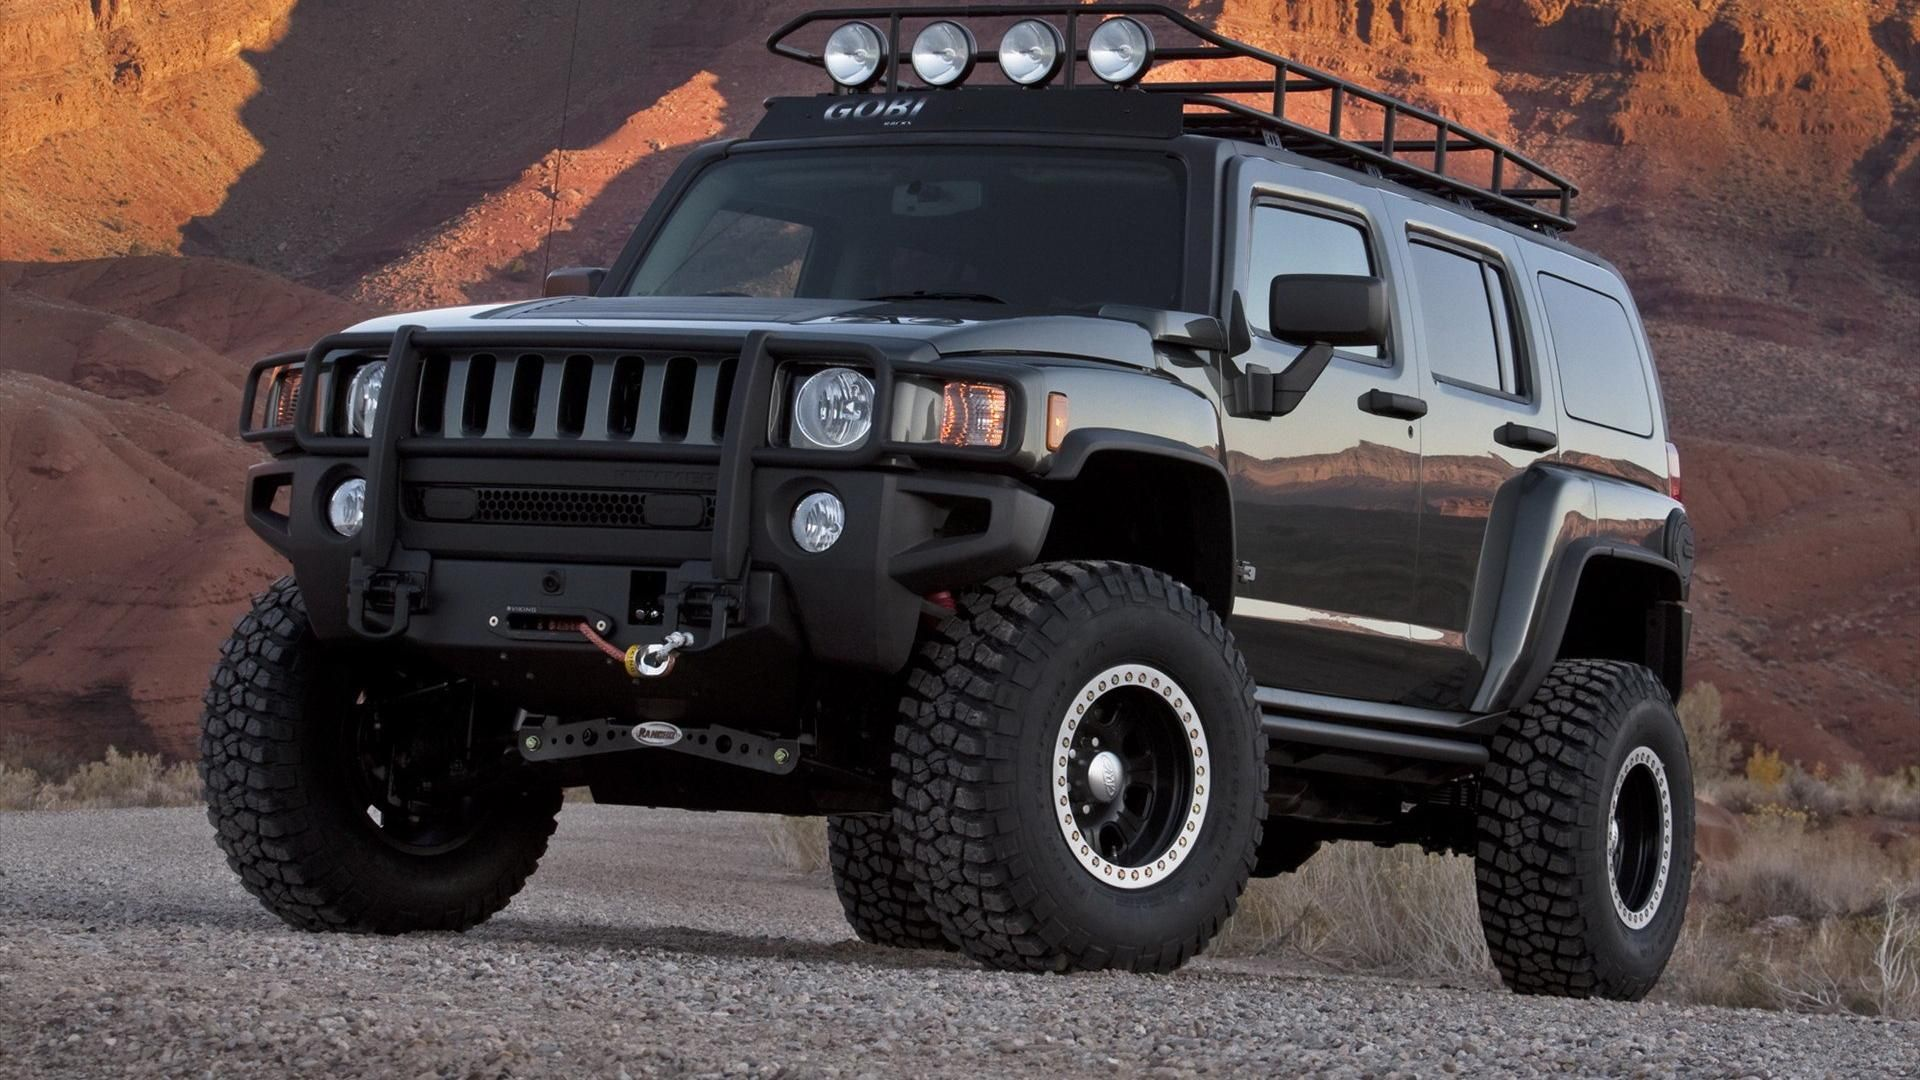 Pin by AMB Wallpapers on Customized Hummer Wallpapers